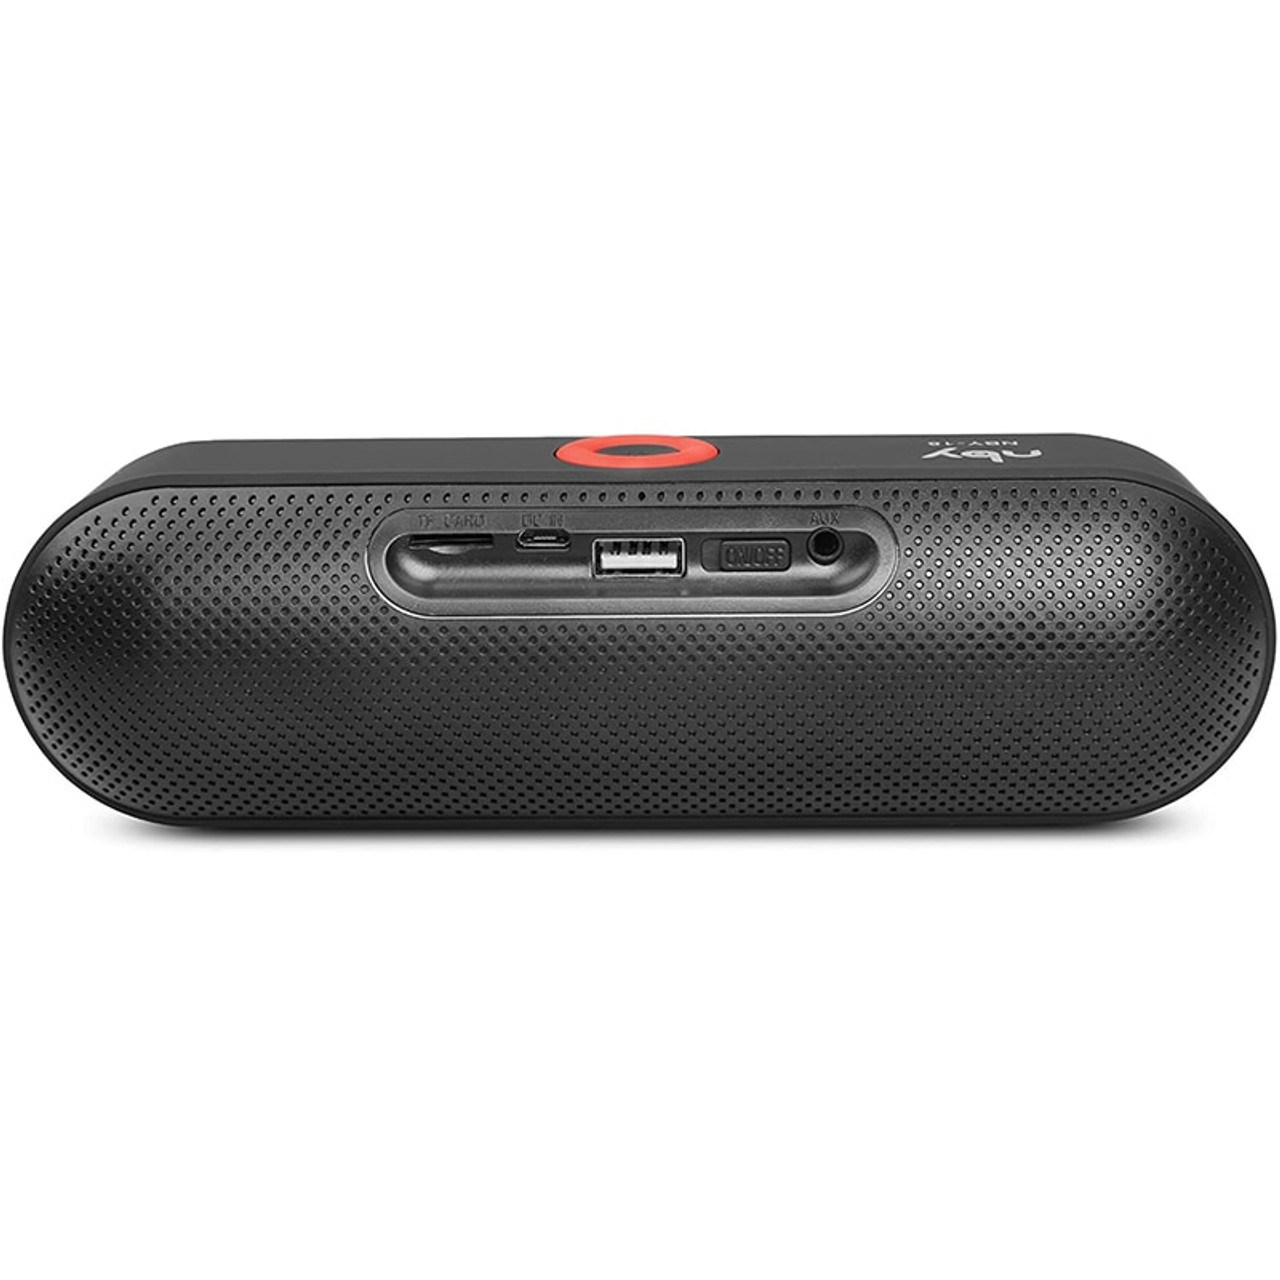 Nby 18 Portable Speaker Wireless Bluetooth Speaker With Super Bass Support Tf Card Aux Usb For Comuter Pc Portable Speakers Borna S General Hardware Ltd